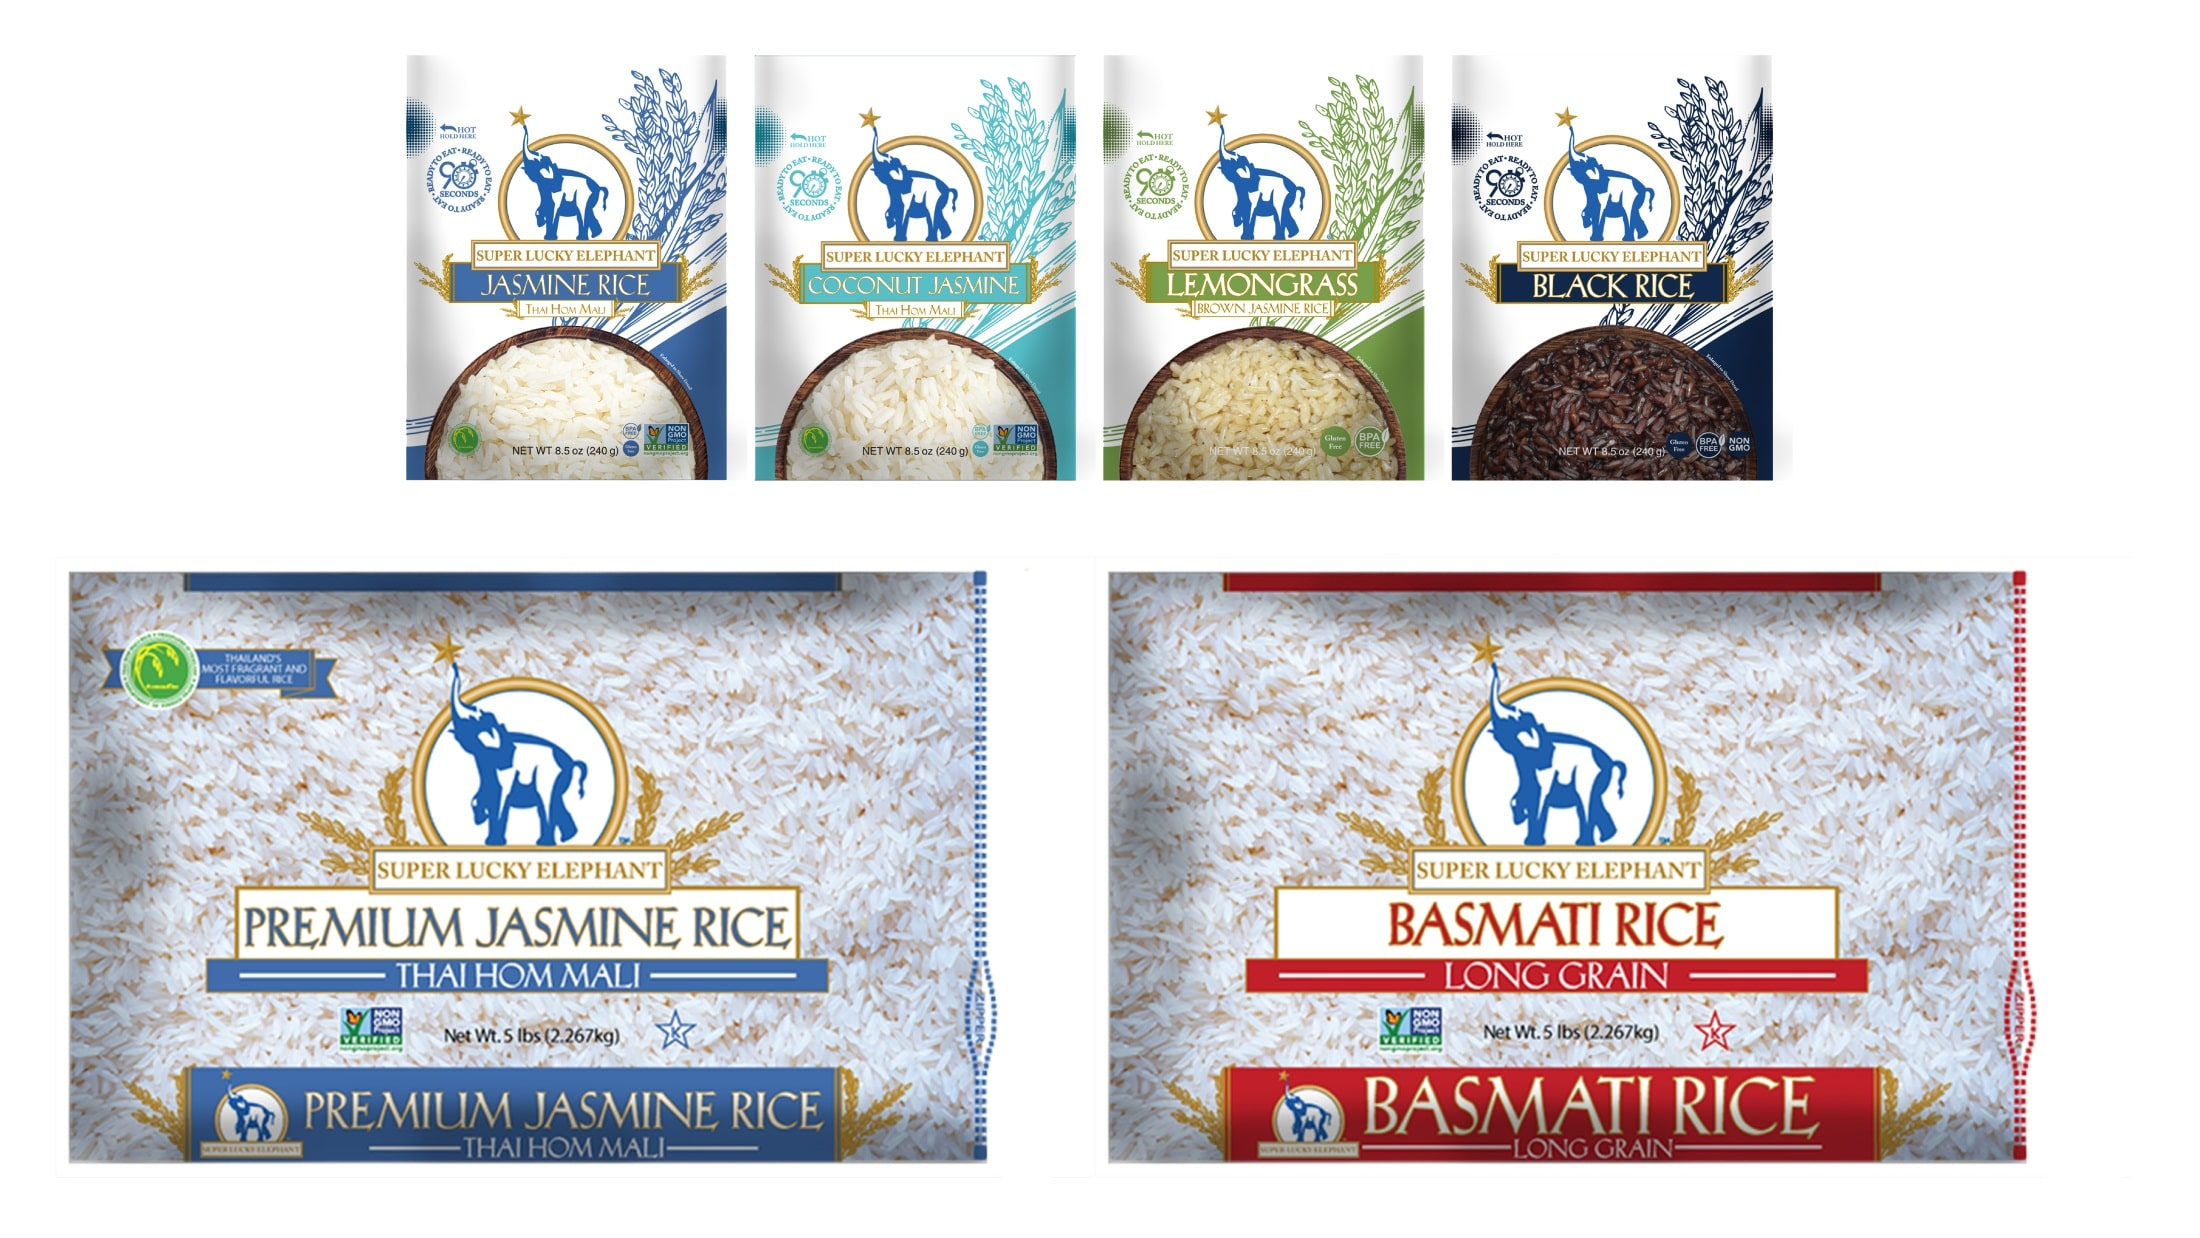 Super Lucky Elephant Debuts Three New Products and Fresh Look for Portfolio of Dry and Ready-To-Eat Rice